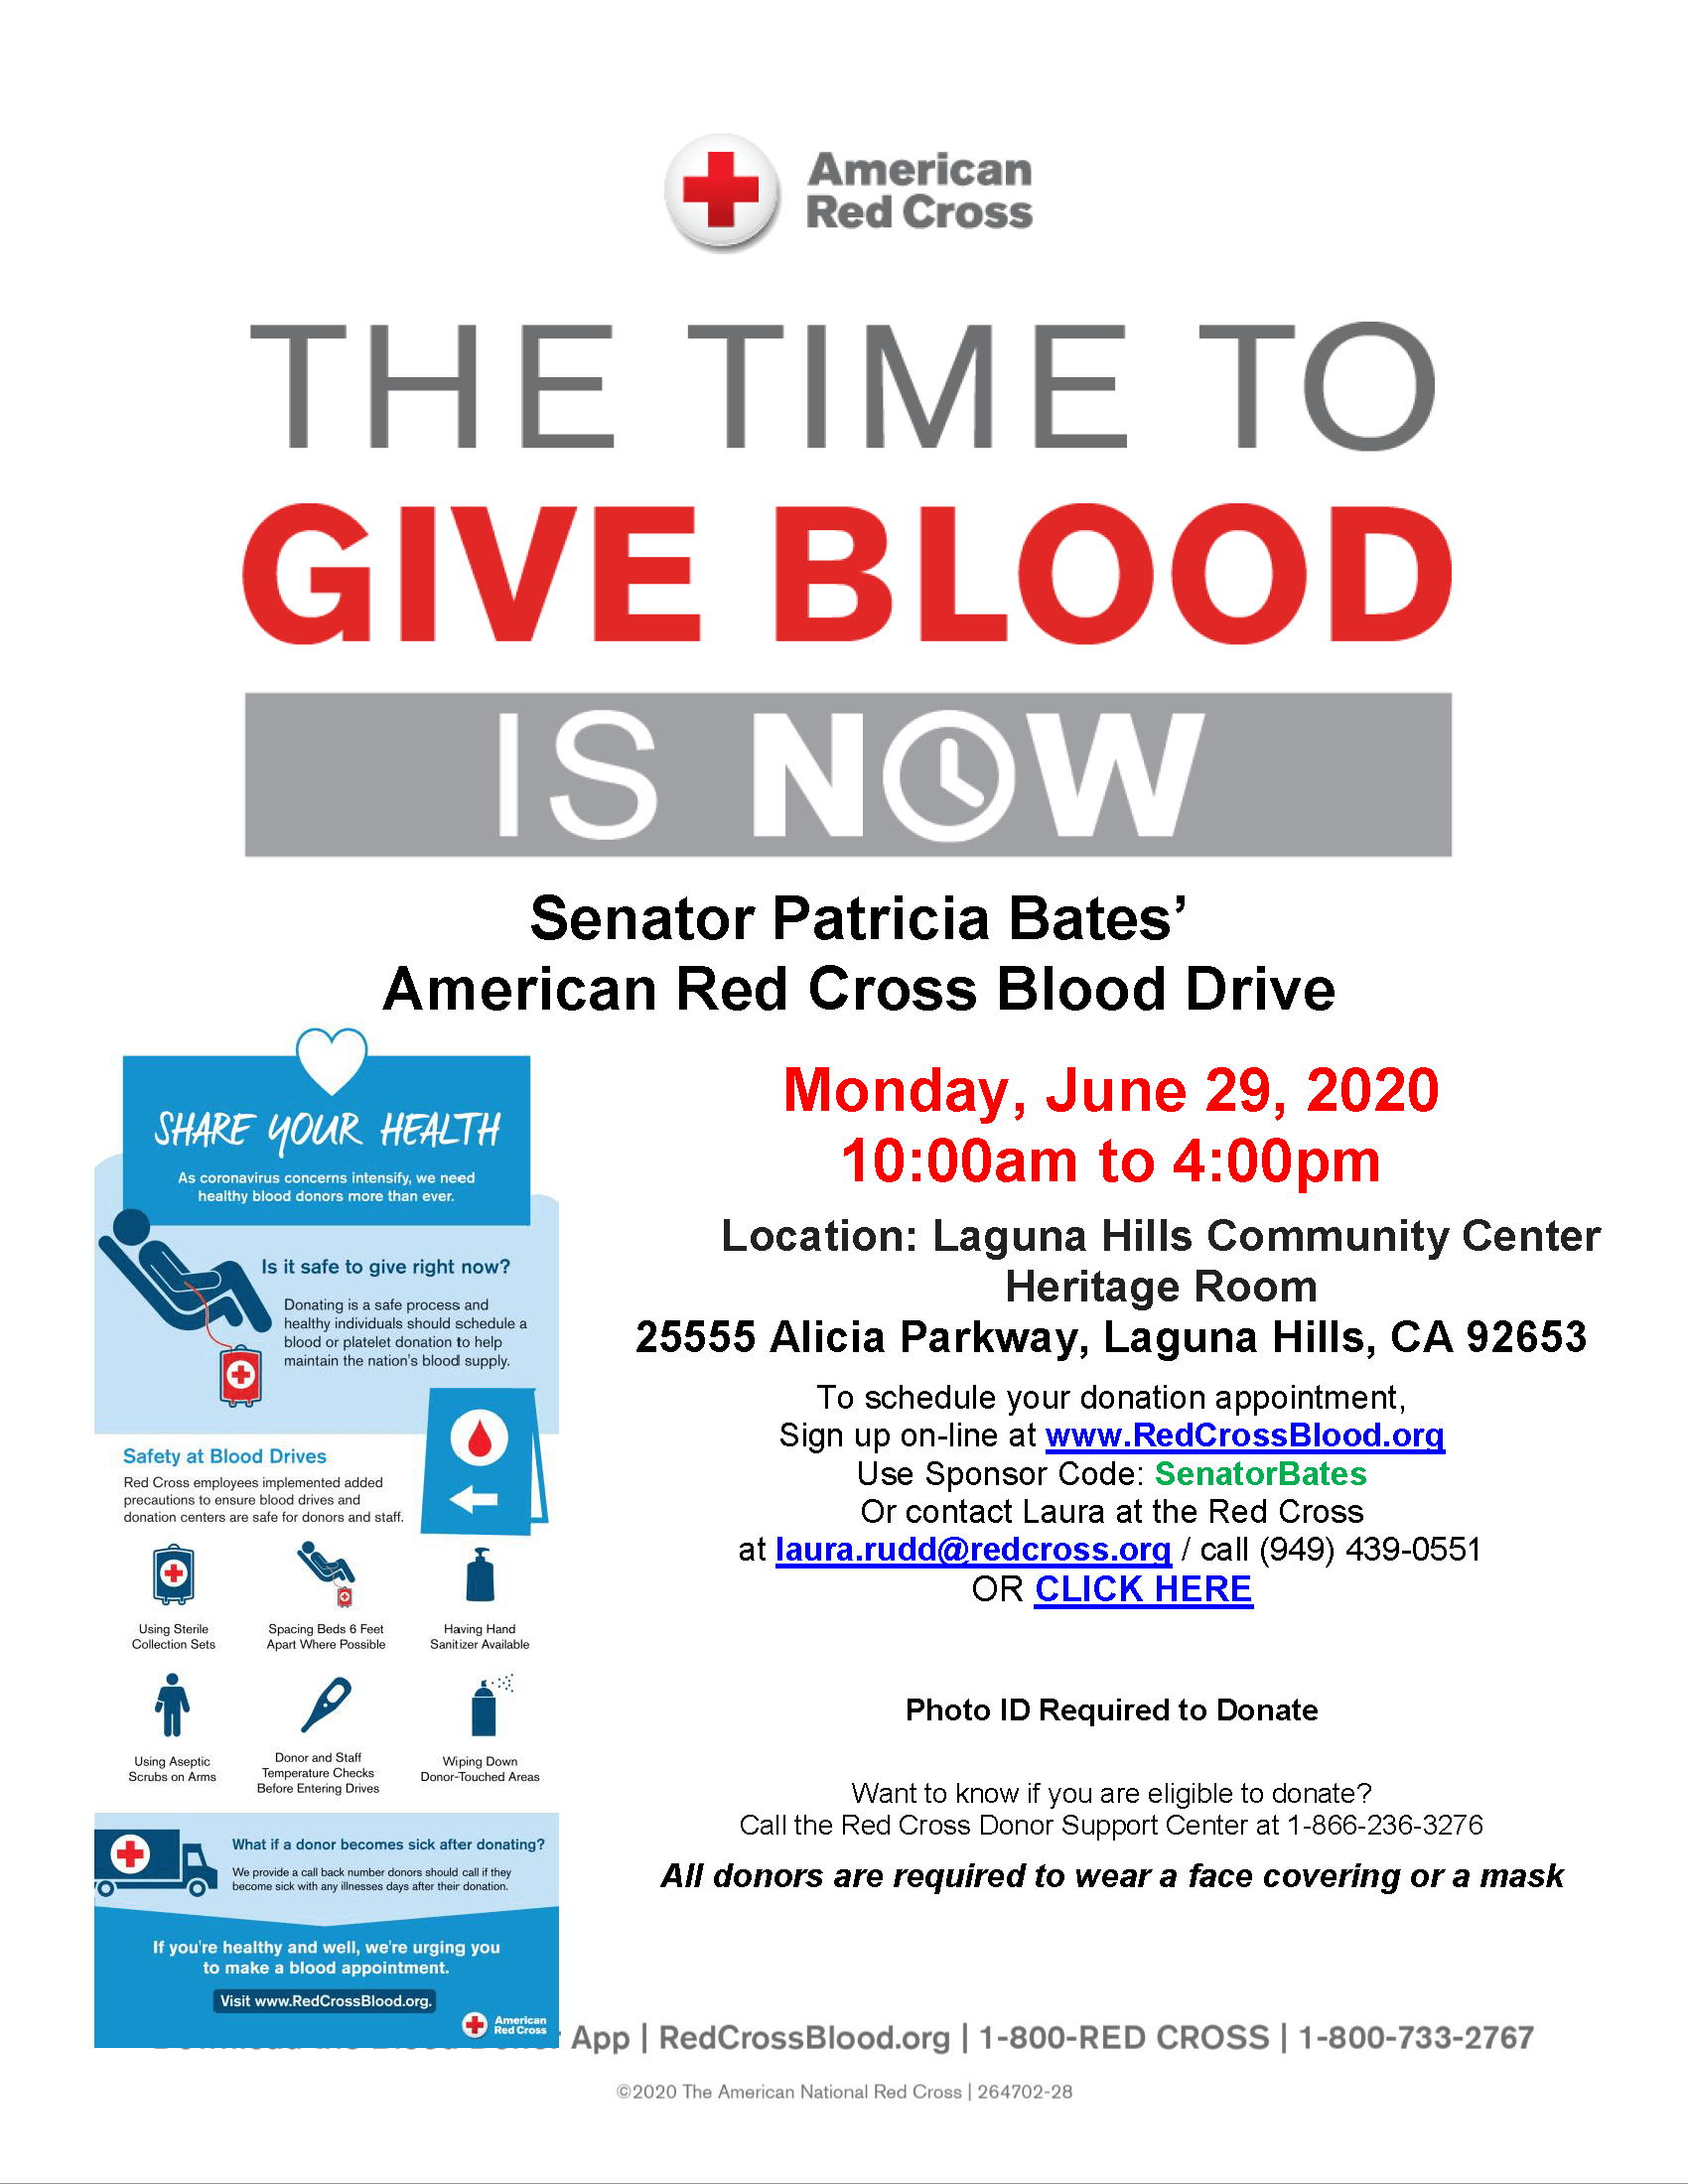 Red Cross Senator Bates Blood Drive flyer